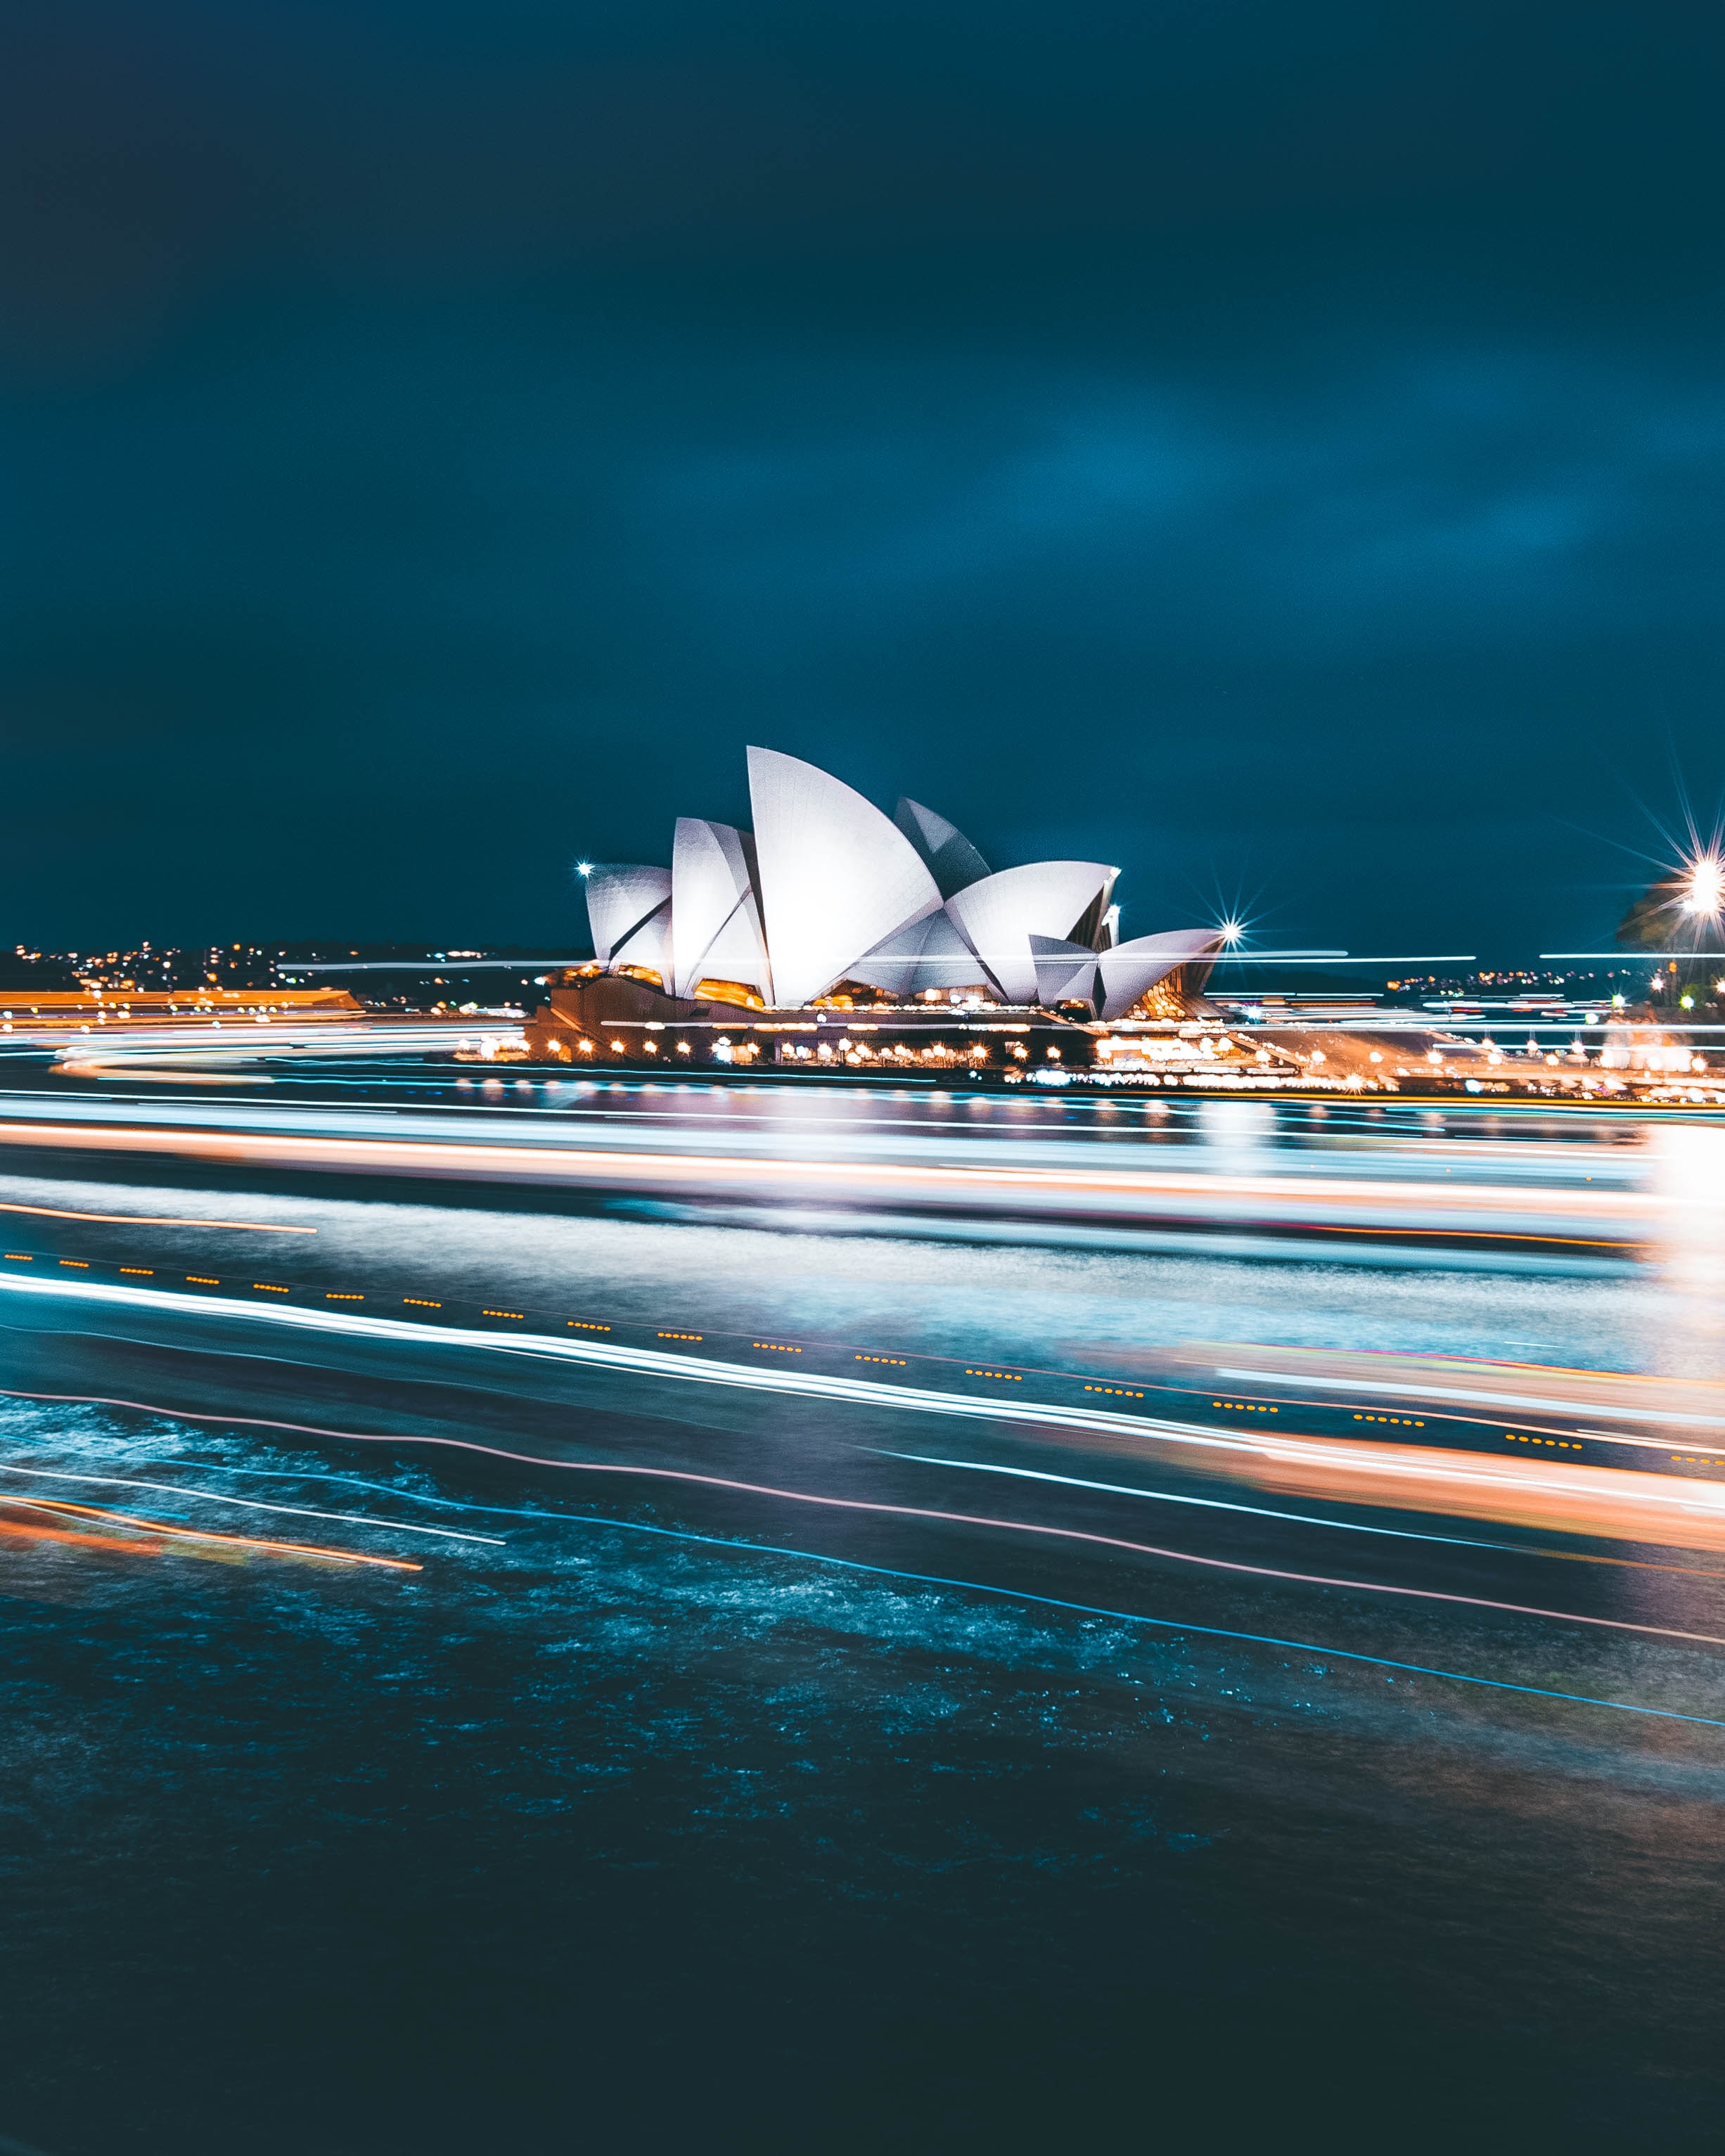 Sydney Opera House during nighttime